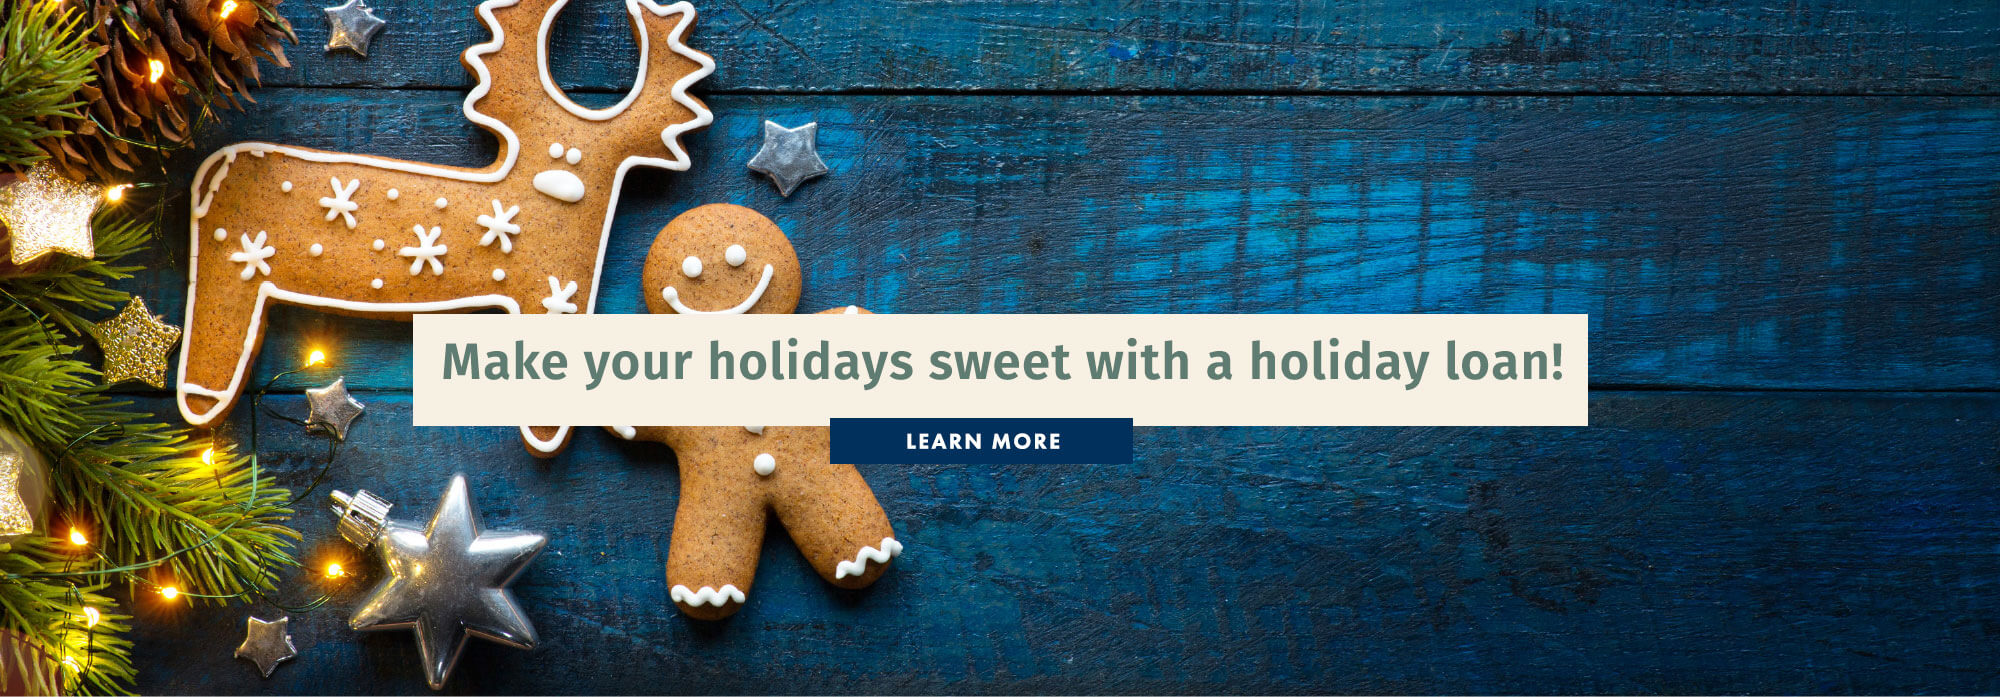 Make your holiday sweet with a holiday loan!